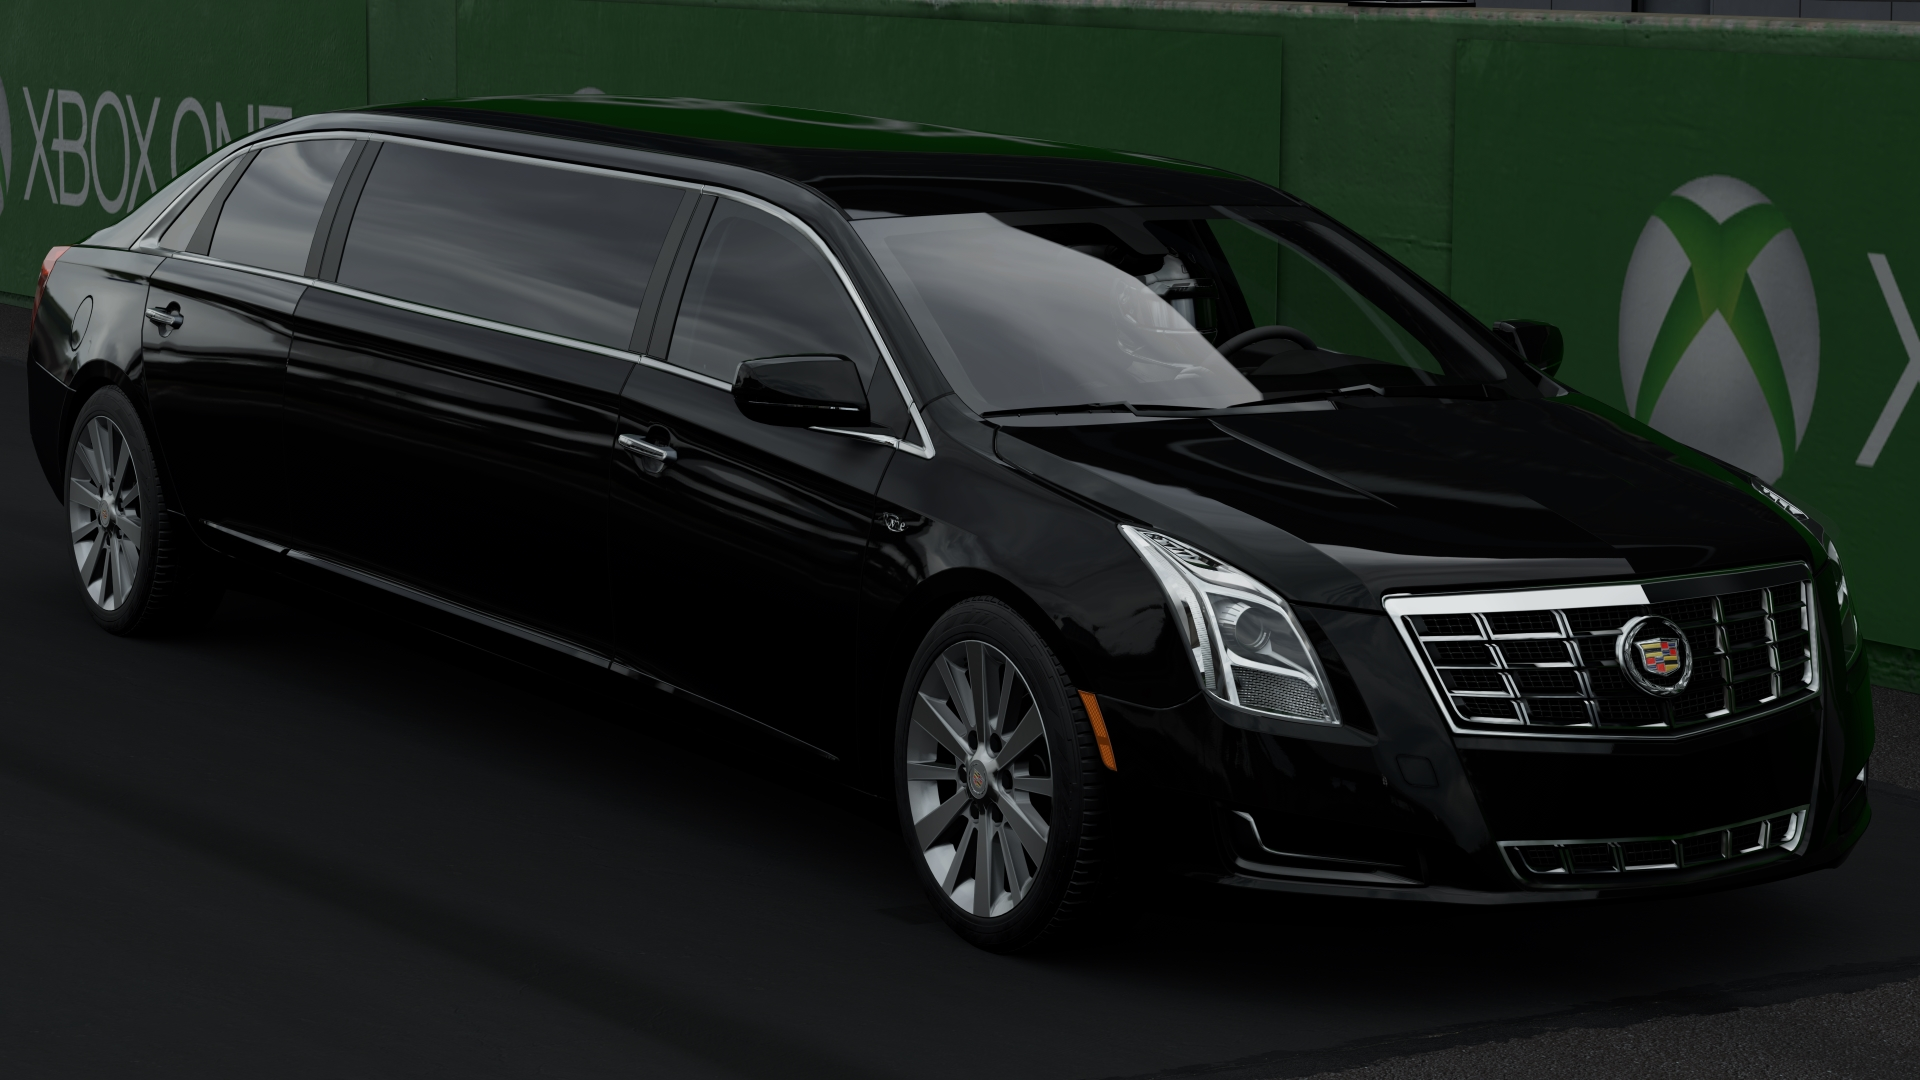 The 2013 cadillac xts limousine in forza motorsport 7